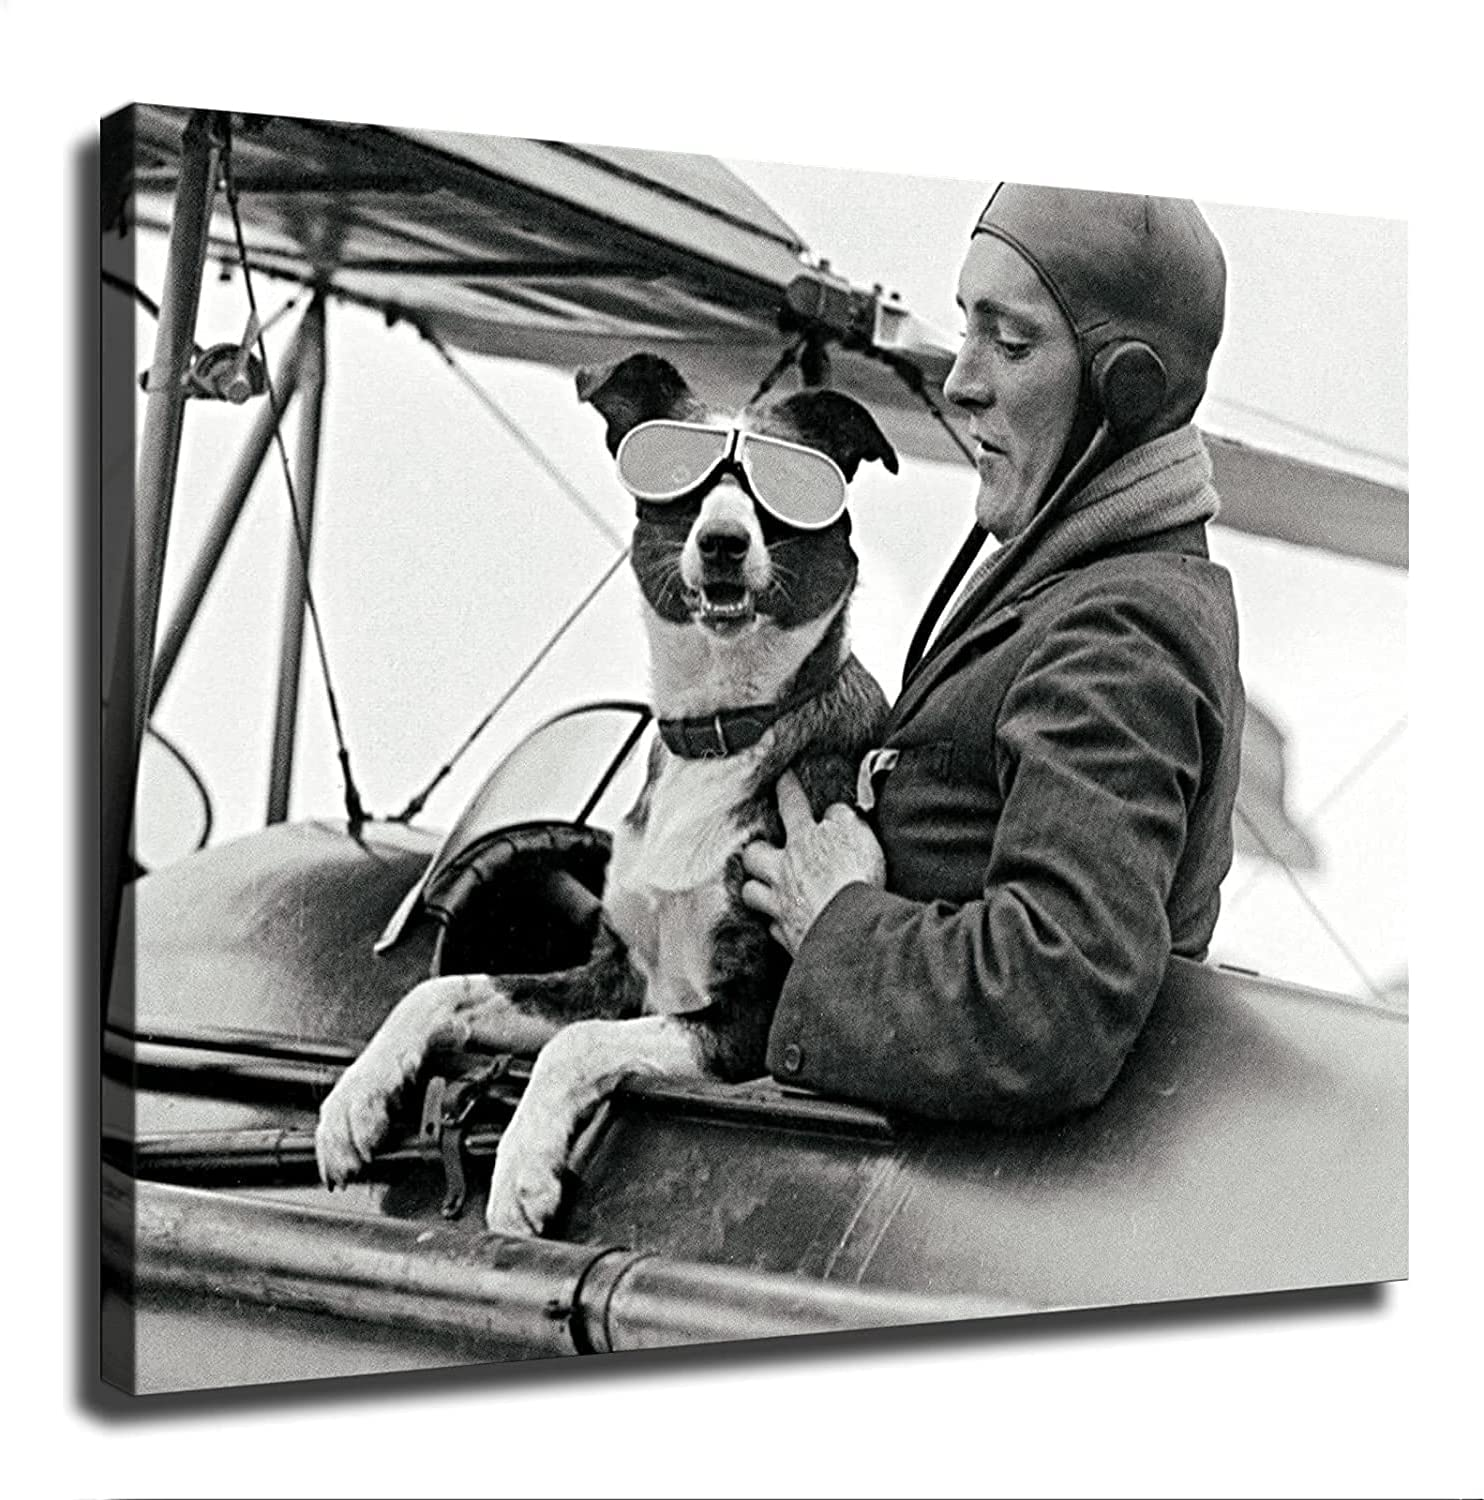 Dog Pilot Airplane Vintage Photograph Plane Aviator Flying sold out Gift San Francisco Mall